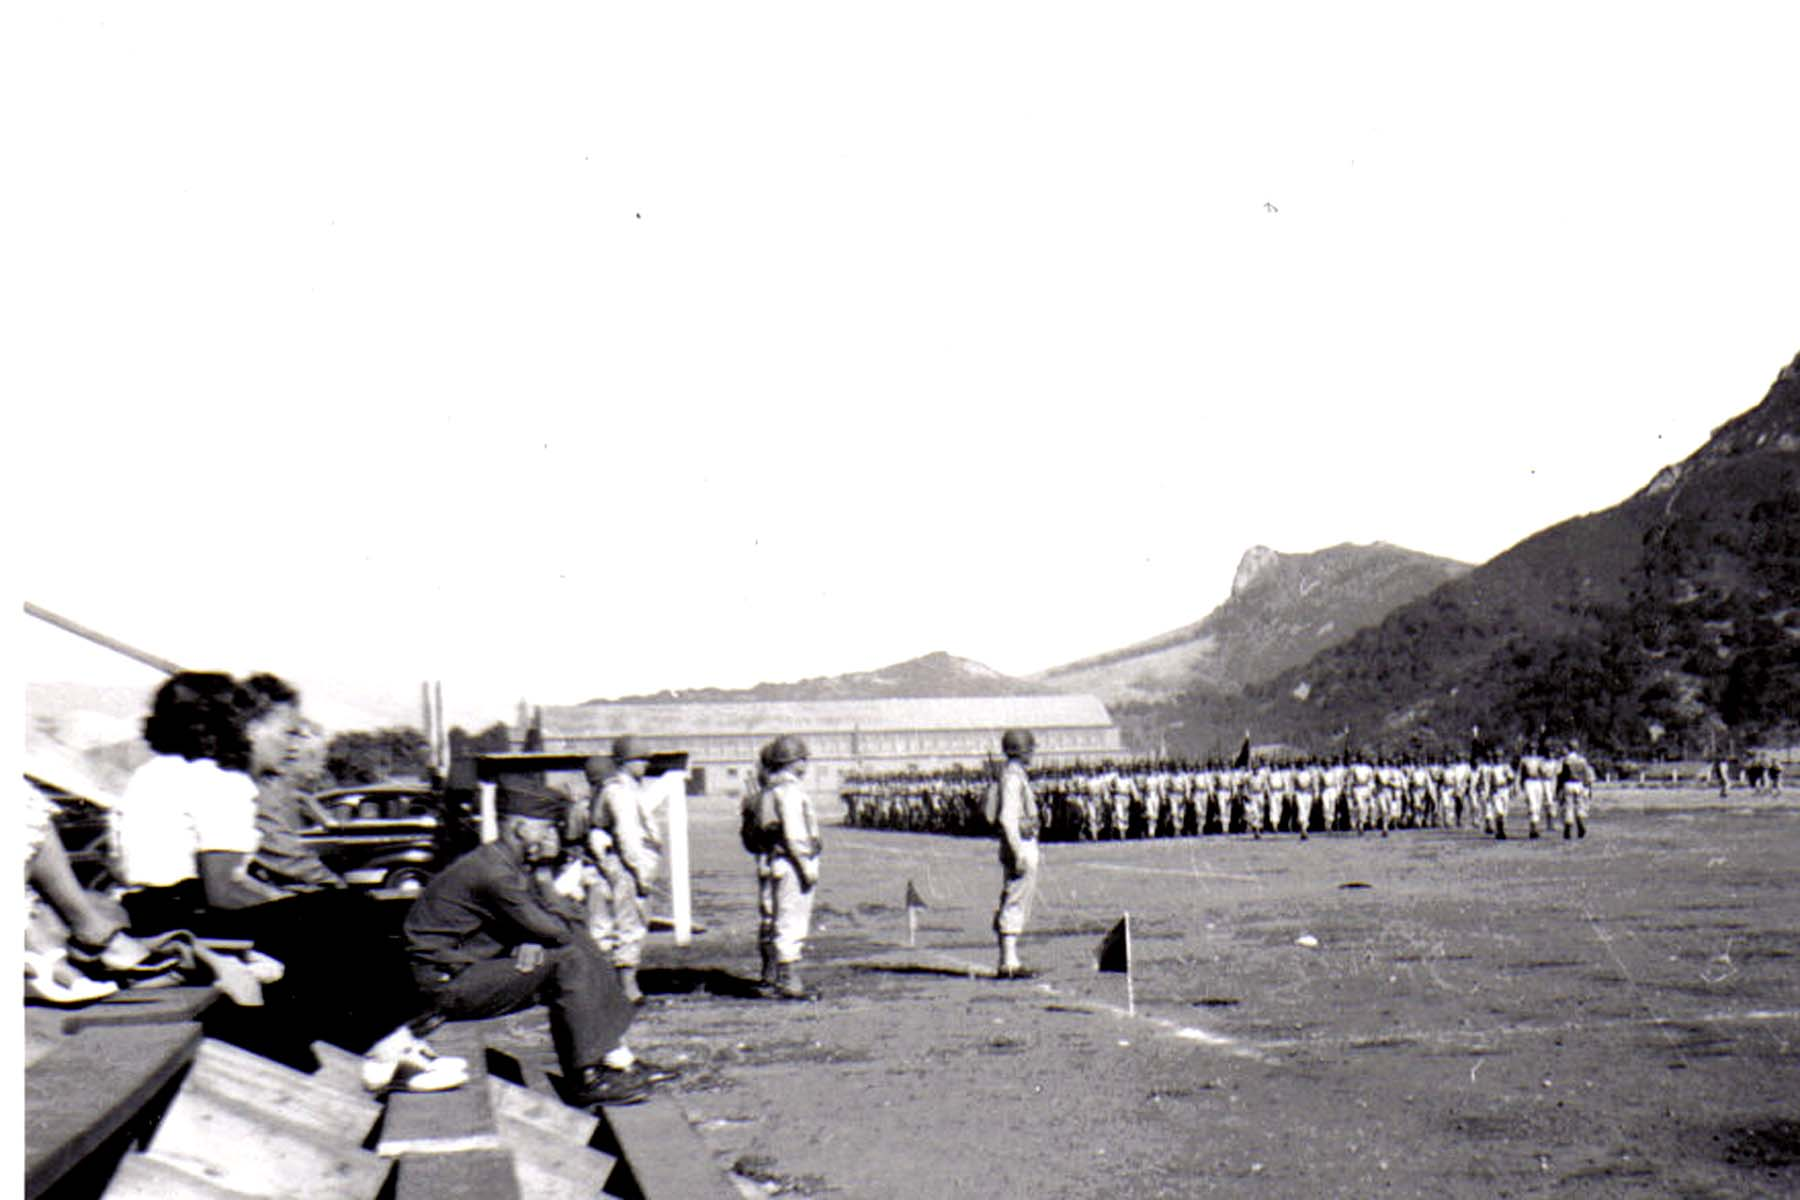 C27 Camp San Luis Obispo - August 2_ 1943 parade - The First Battalion _passes in review_